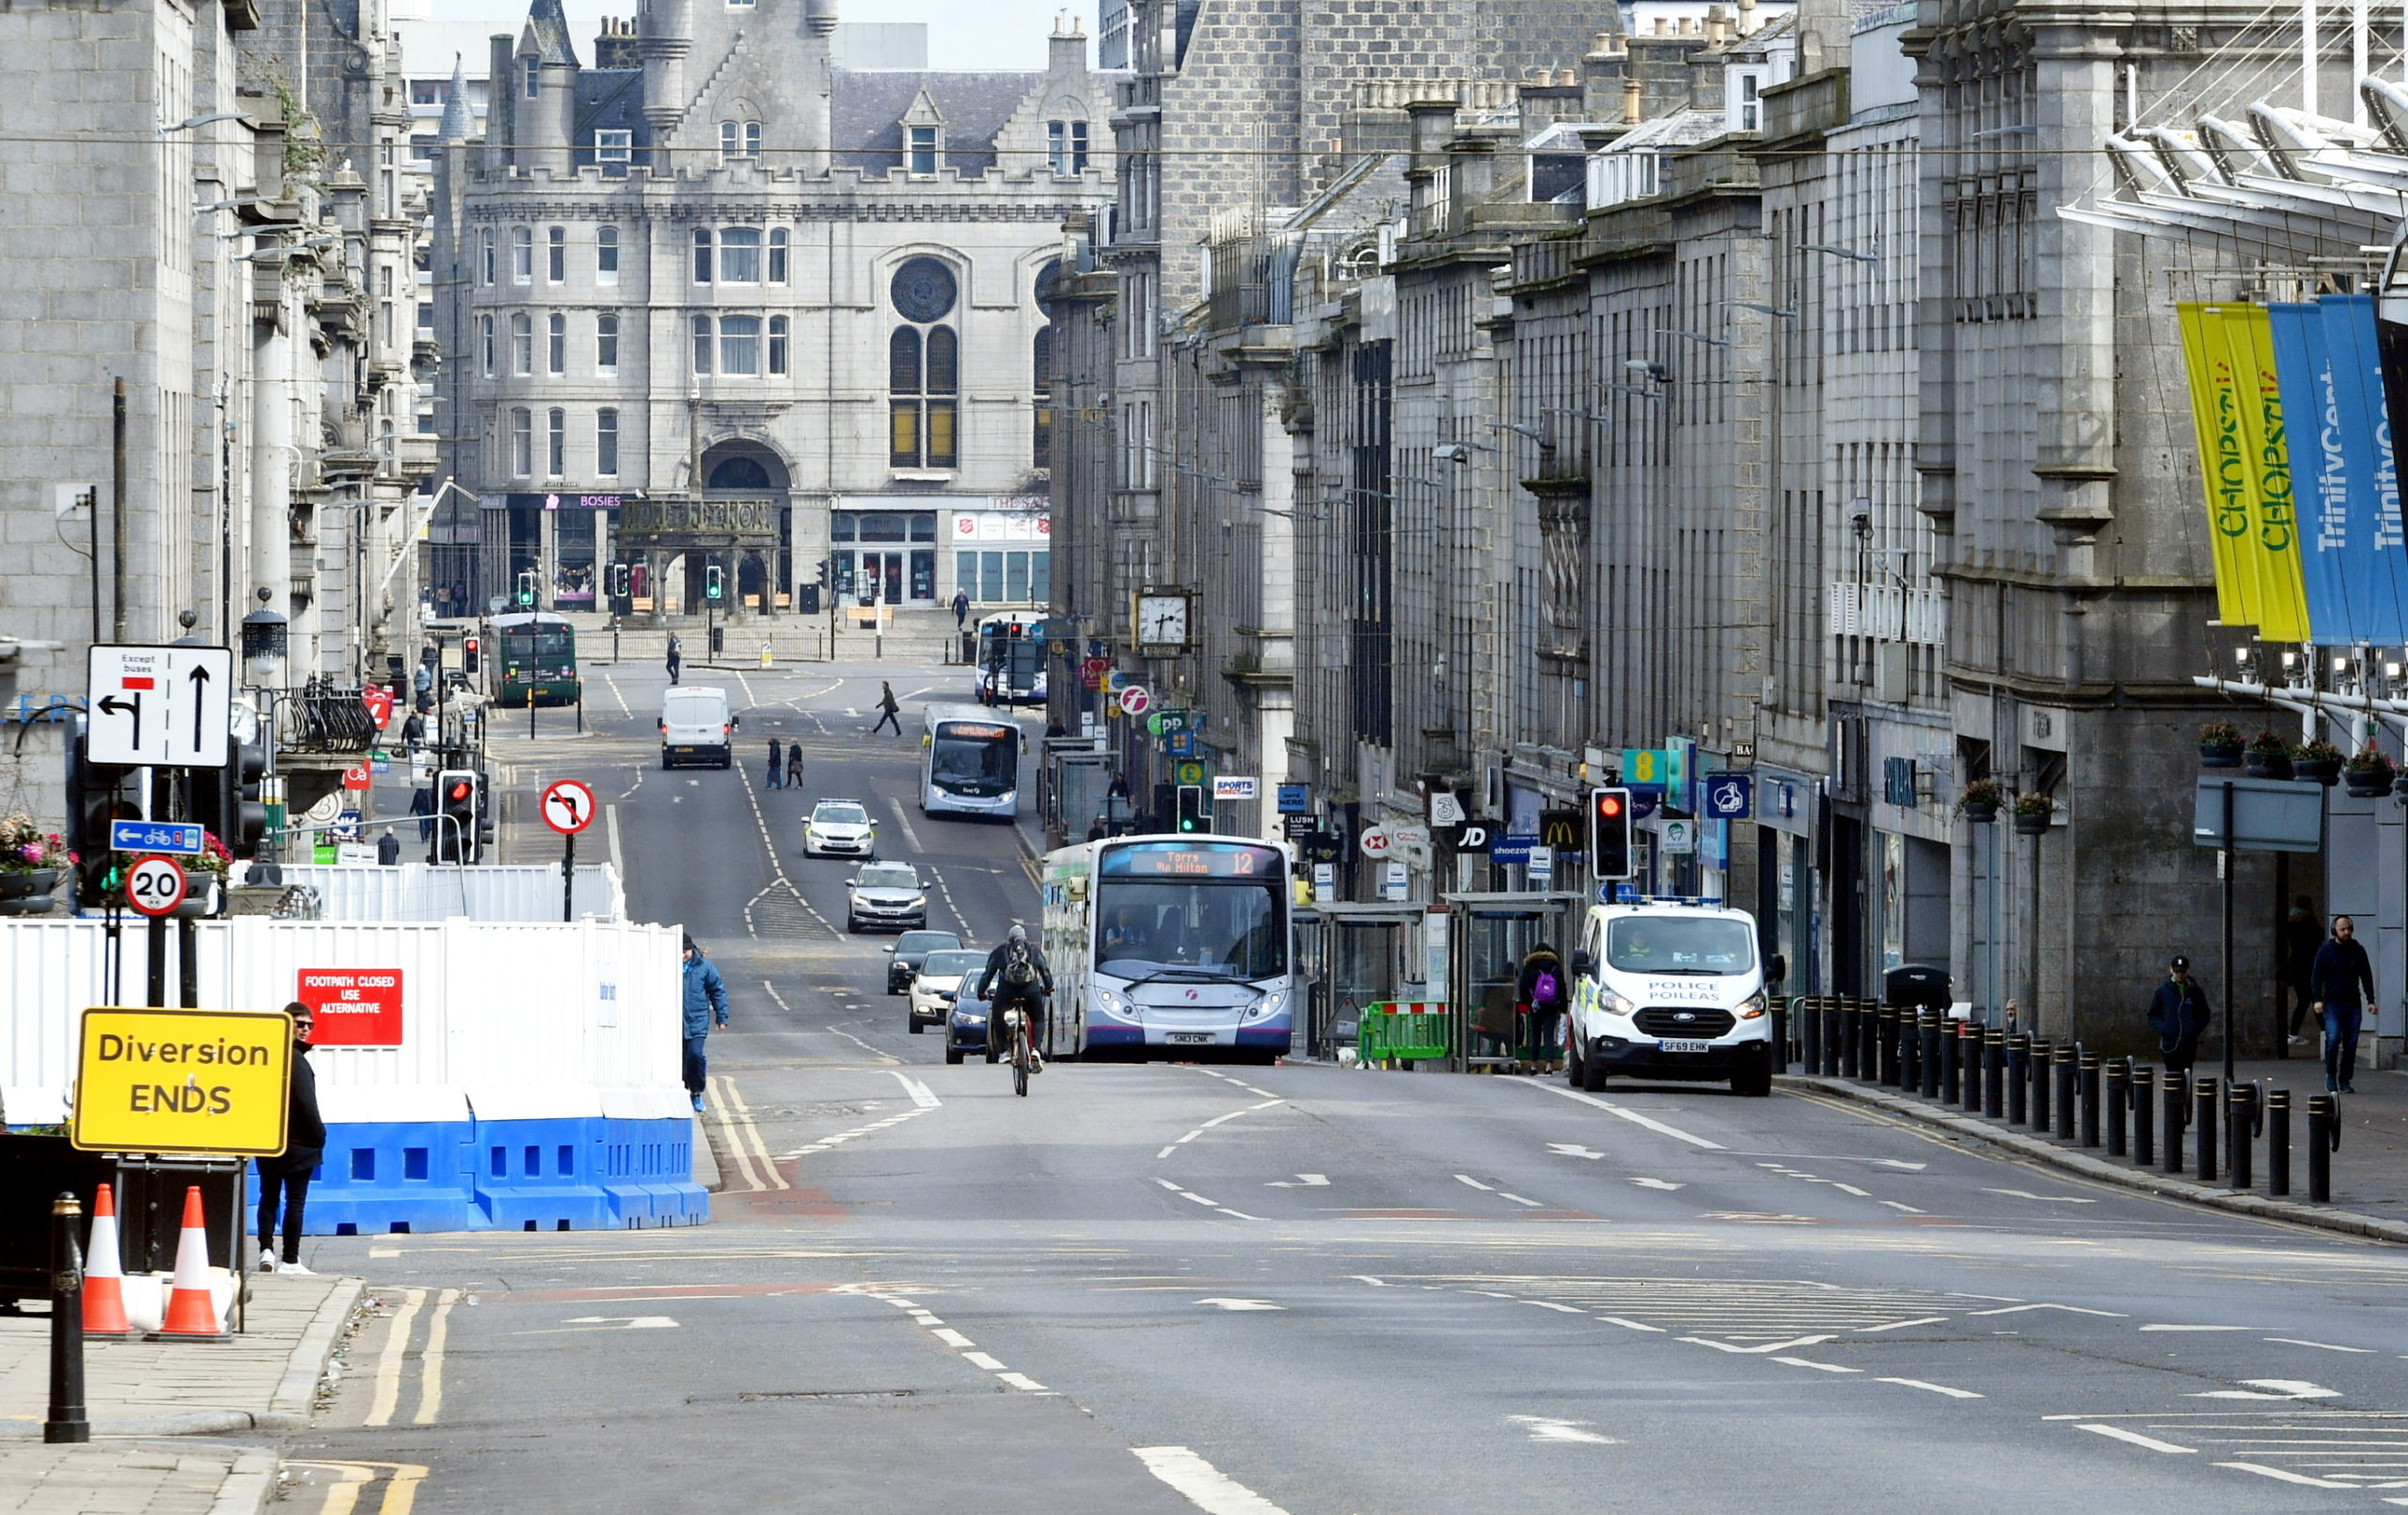 Bus firms have raised concerns over plans to transform Union Street.